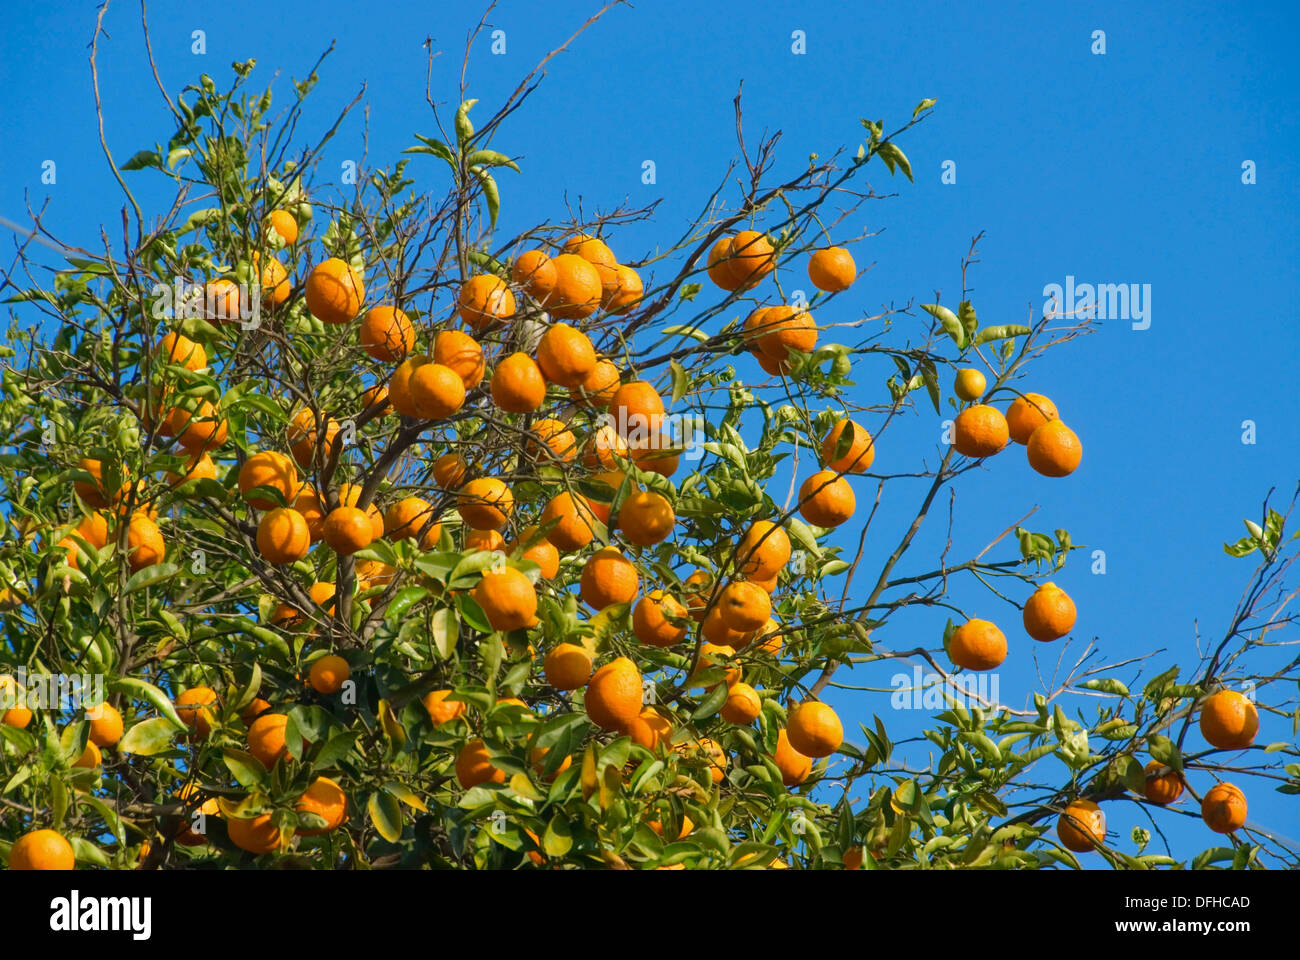 Oranges on tree in San Pasqual Valley, San Diego County, California Stock Photo